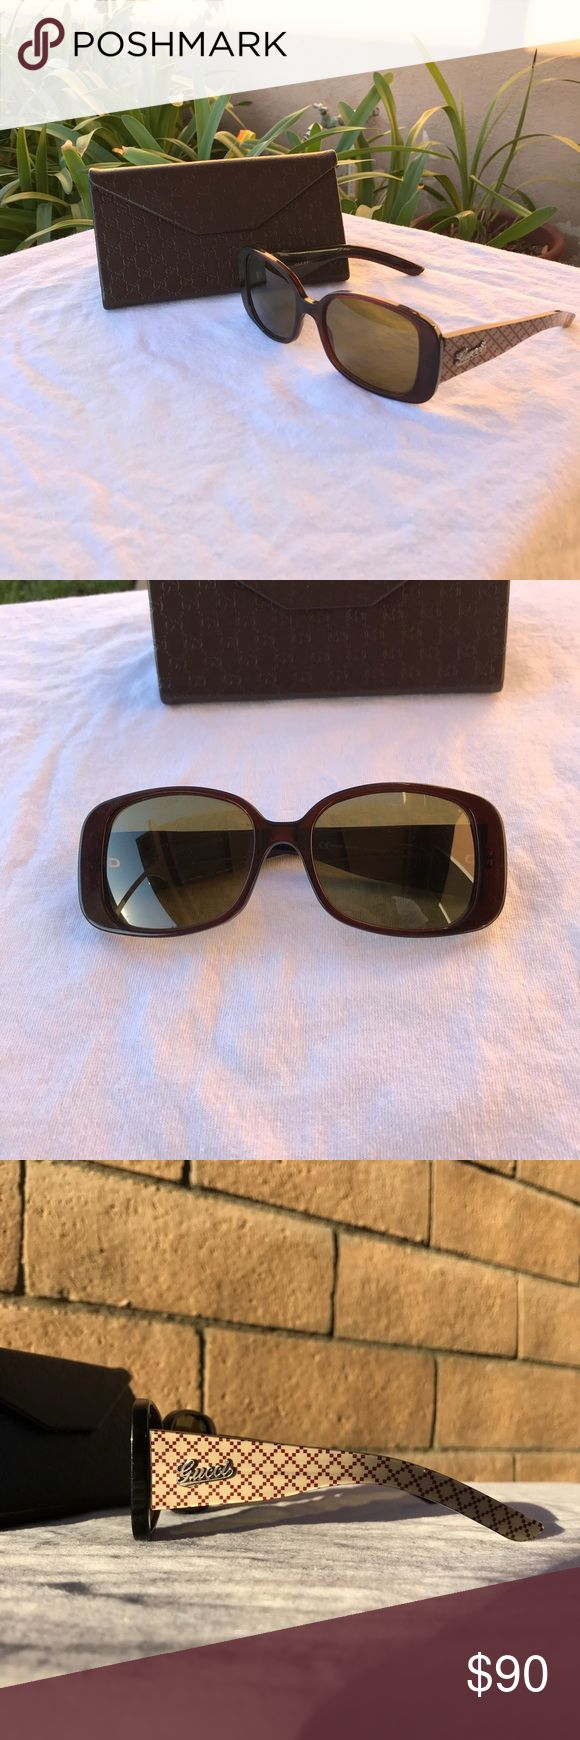 Gucci women's sunglasses w/ case Gucci women's sunglasses with the case! Glasses have very minor scratches on the lenses but all in all are in great condition! Sunglasses have the GUCCI cursive on the side with the diamond monogram along the arm! Very stylish and receive lots of compliments! open to Reasonable offers! Be confident with purchase i ship fast & won't cancel Gucci Accessories Sunglasses